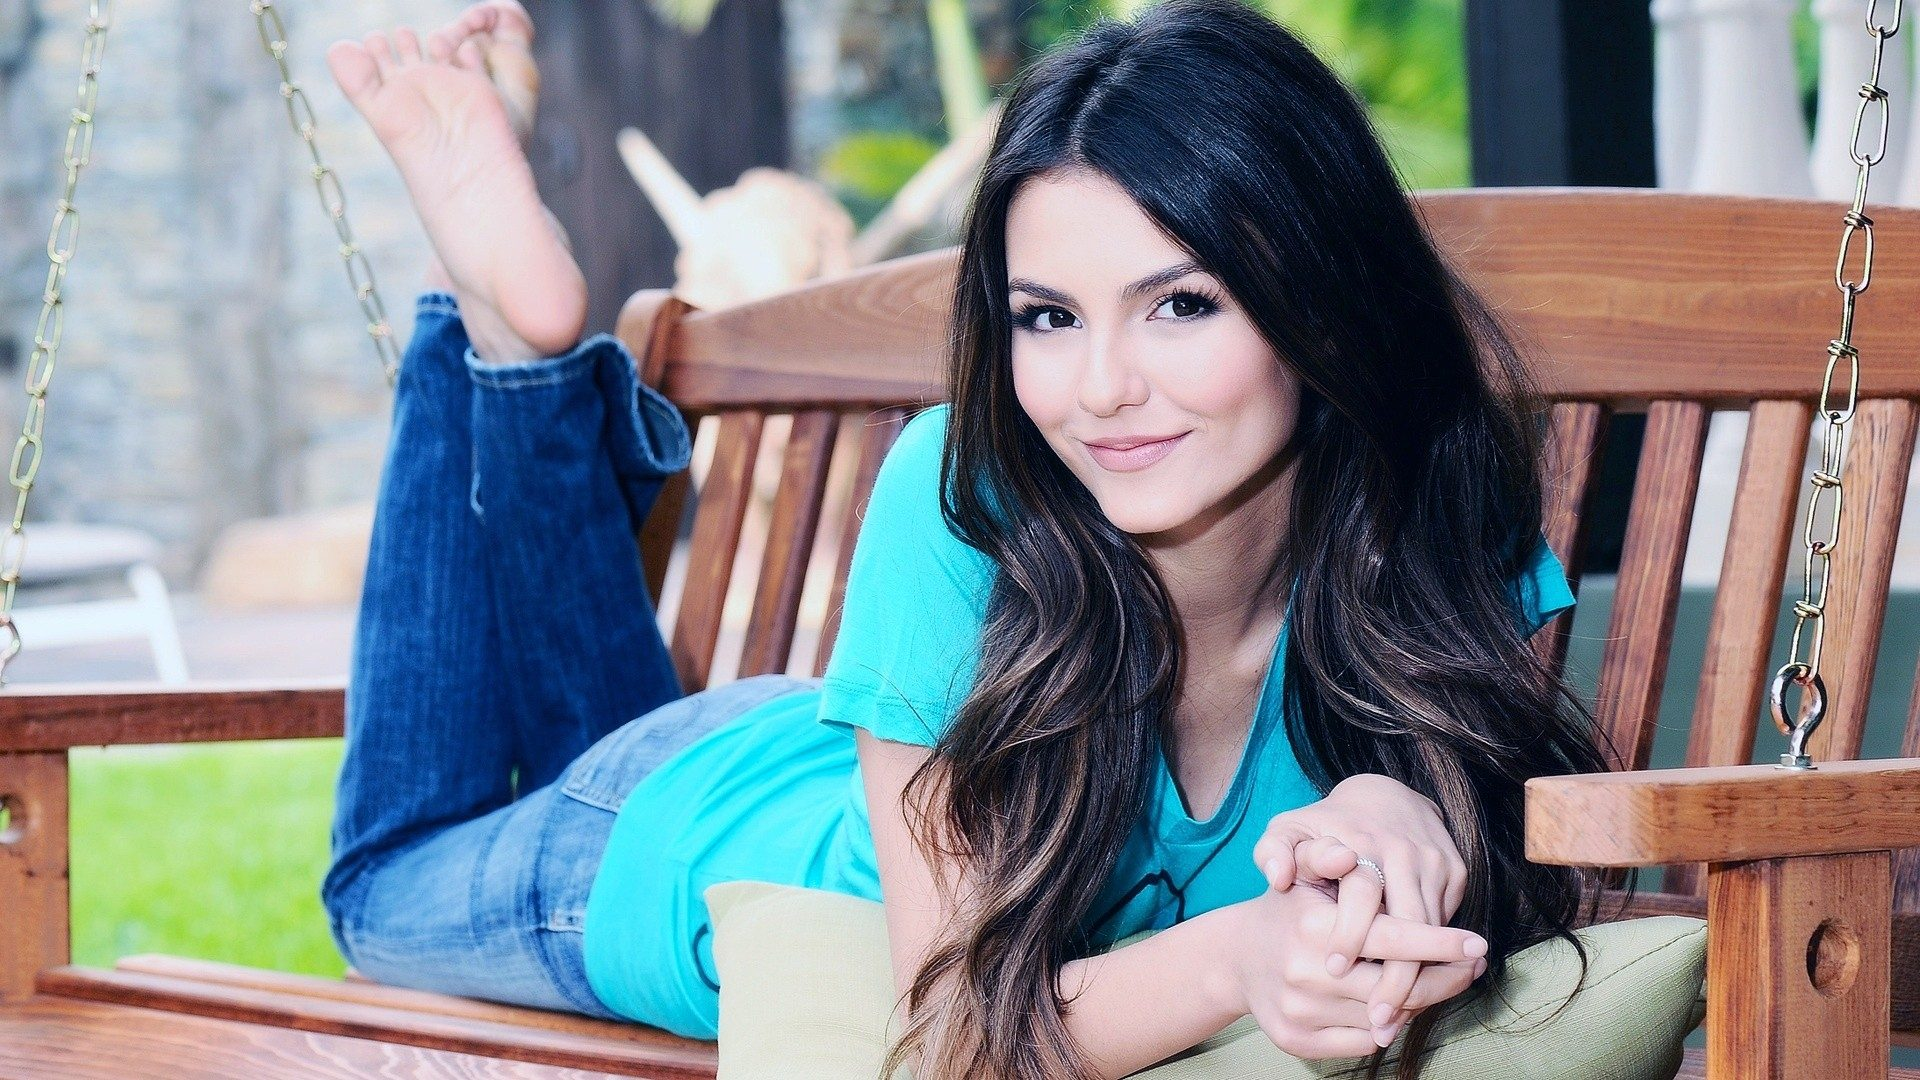 Victoria Justice Wallpaper Hd HD Wallpapers BackgroundsTumblr Backgrounds Images Pictures